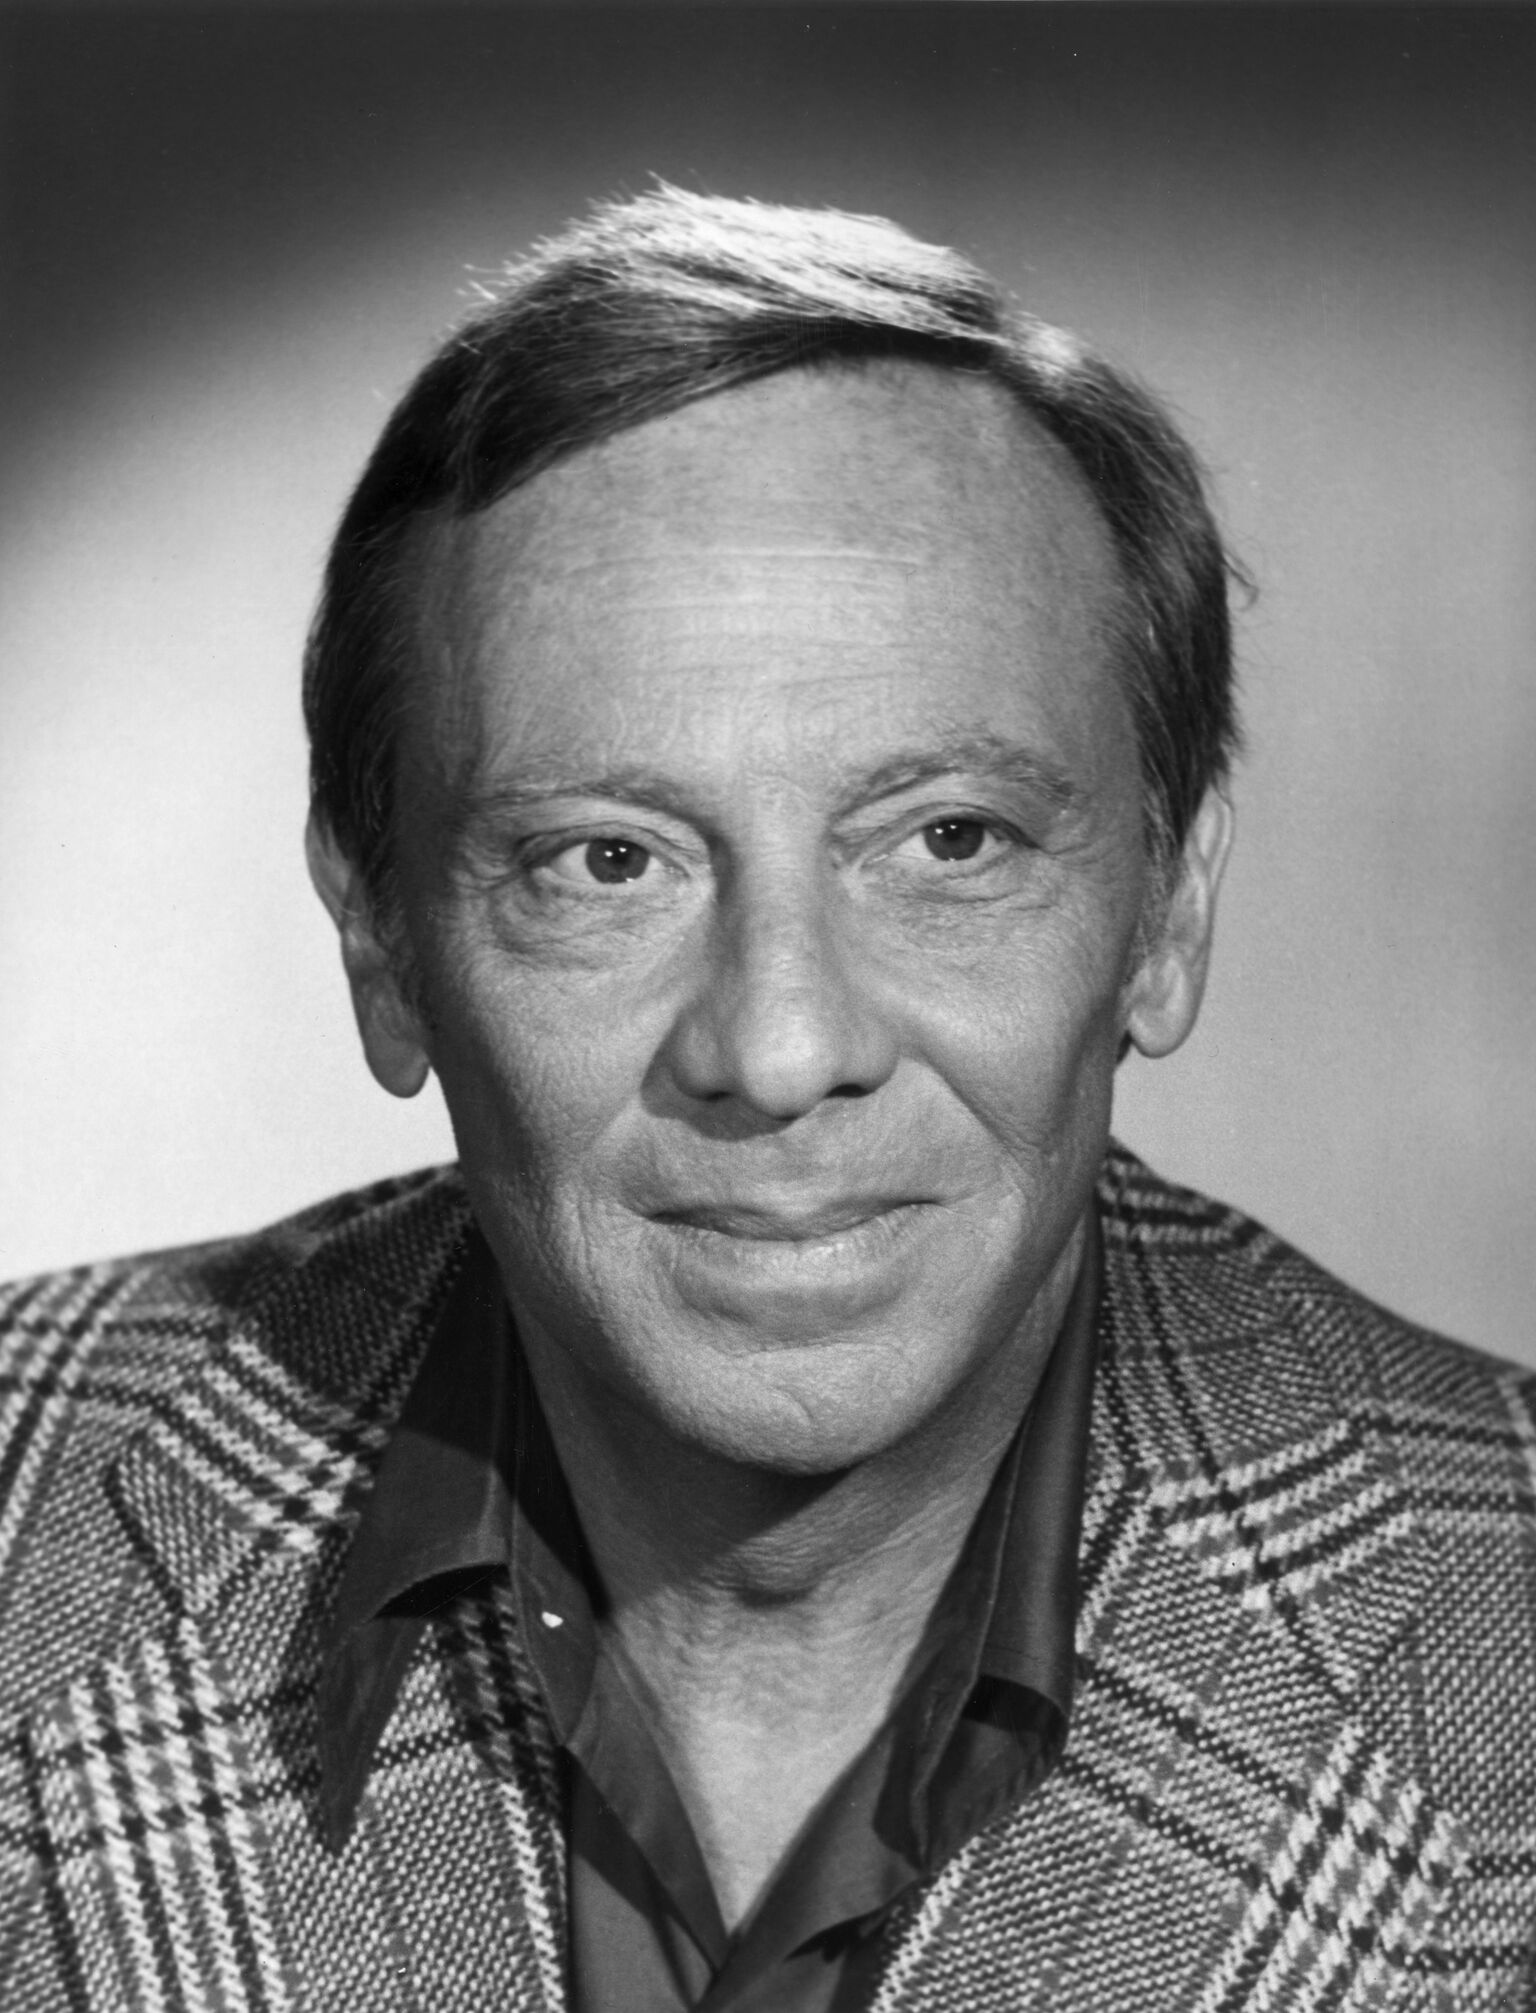 Studio headshot portrait of American actor Norman Fell (1924-1998), wearing a houndstooth blazer. | Getty Images